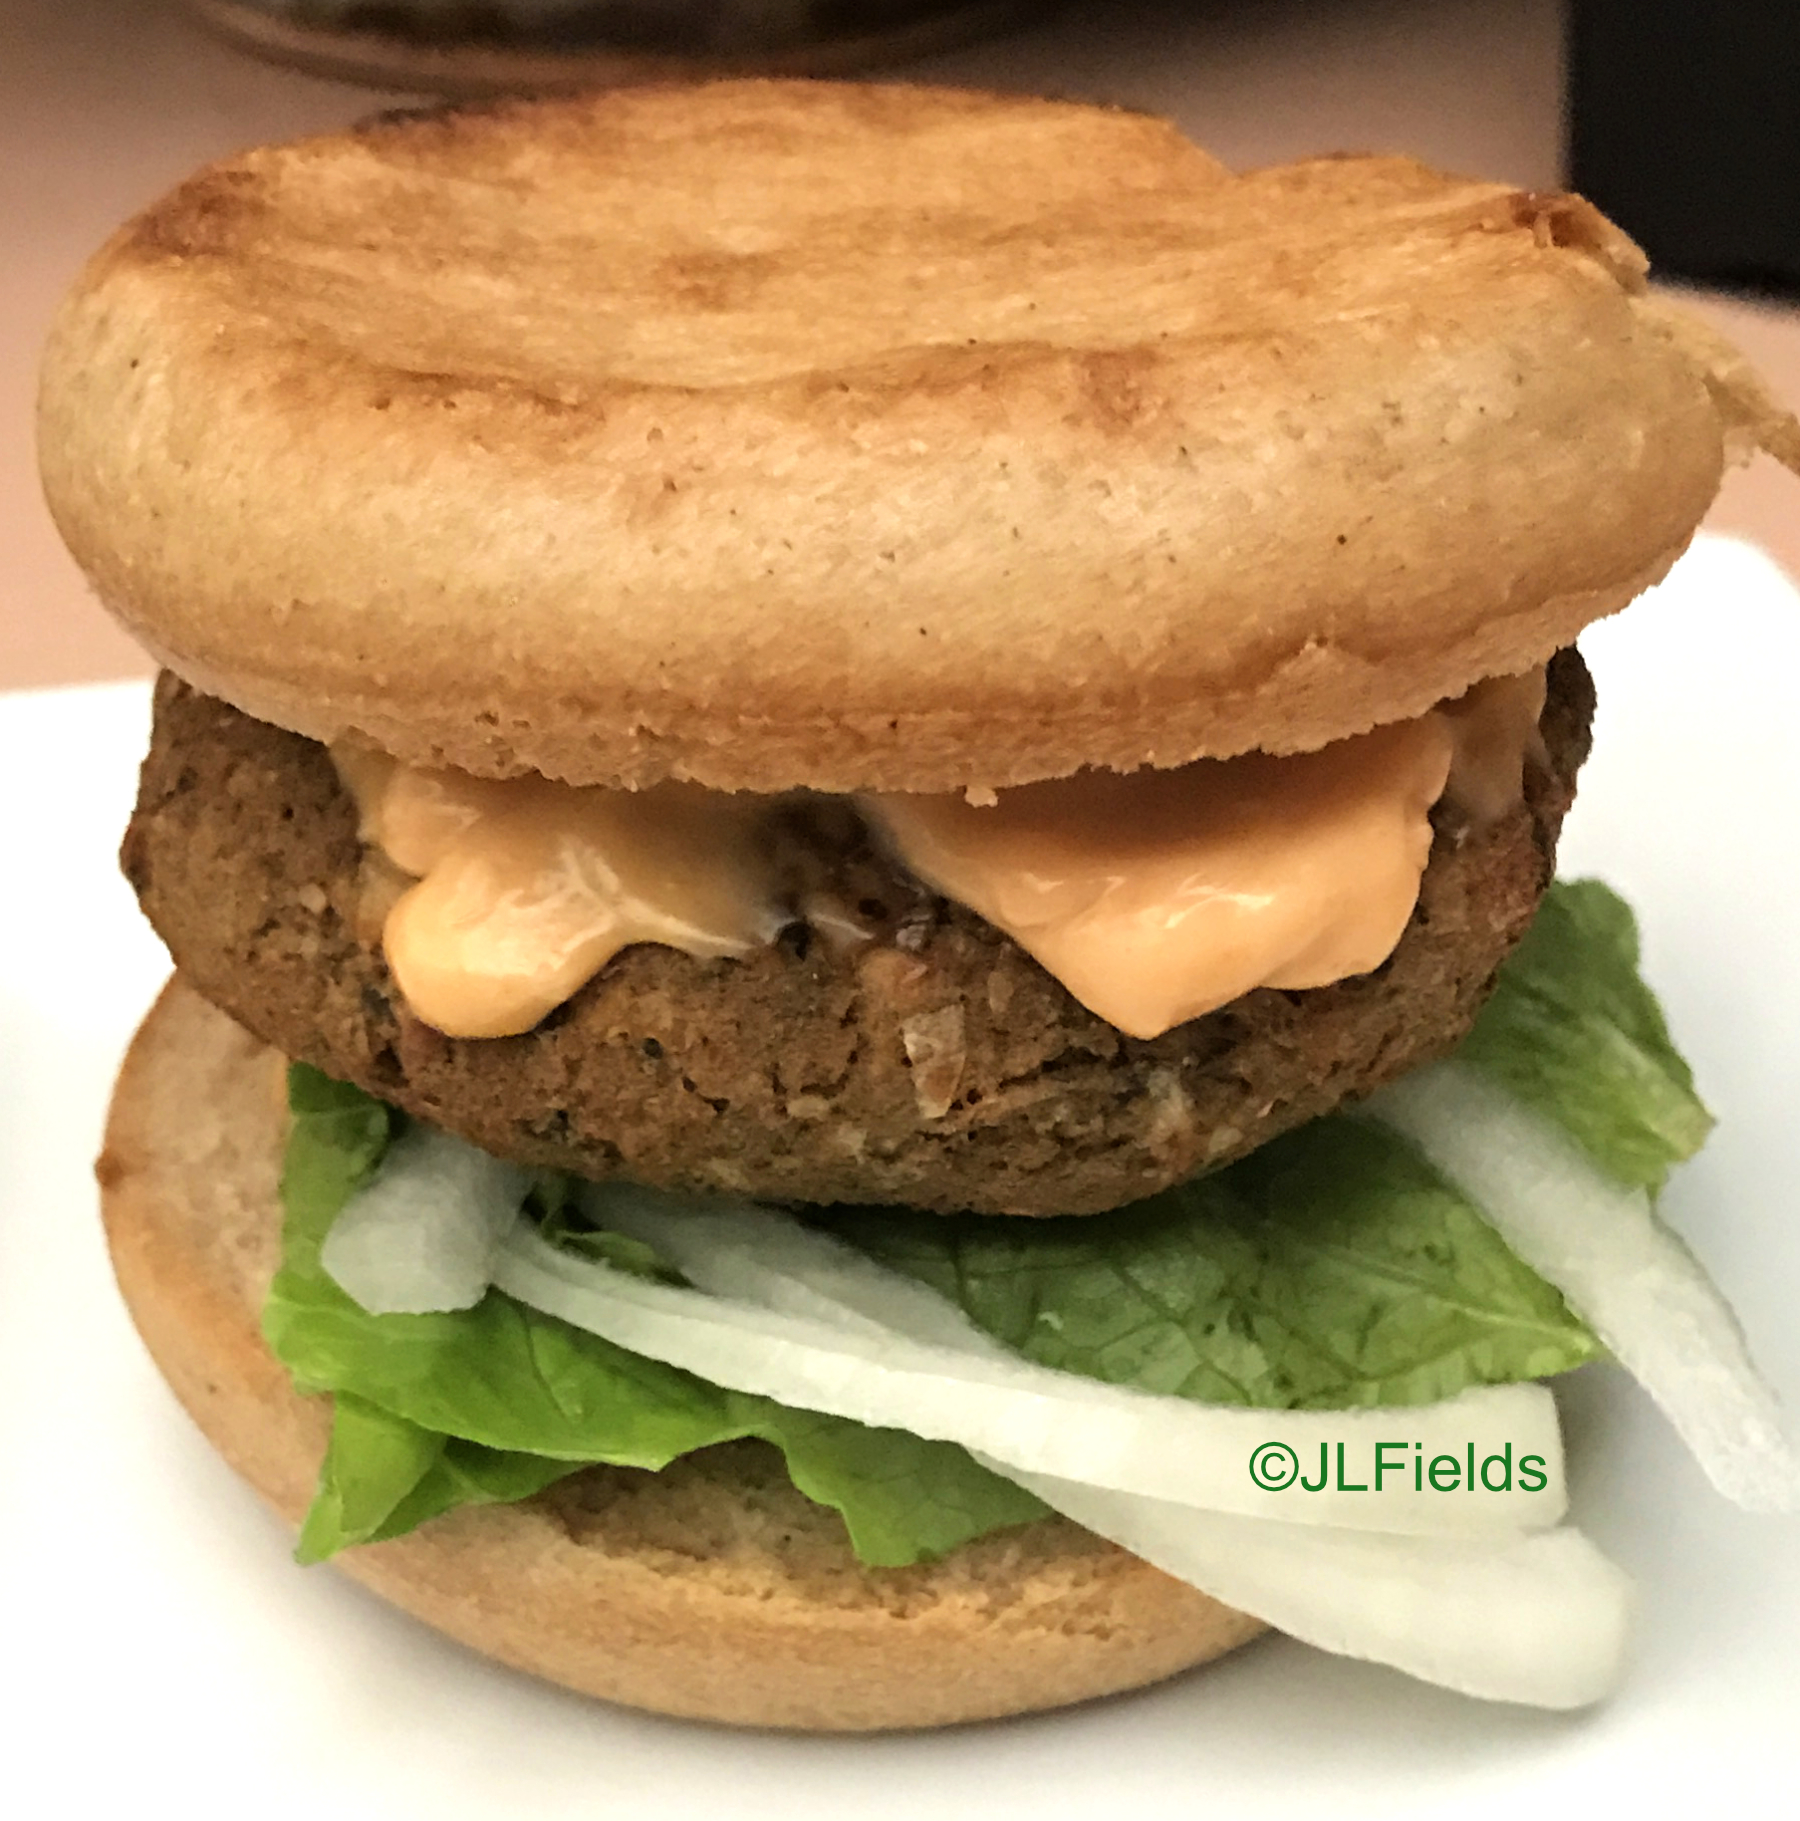 fried lentil burger pressure cooker air fryer recipe